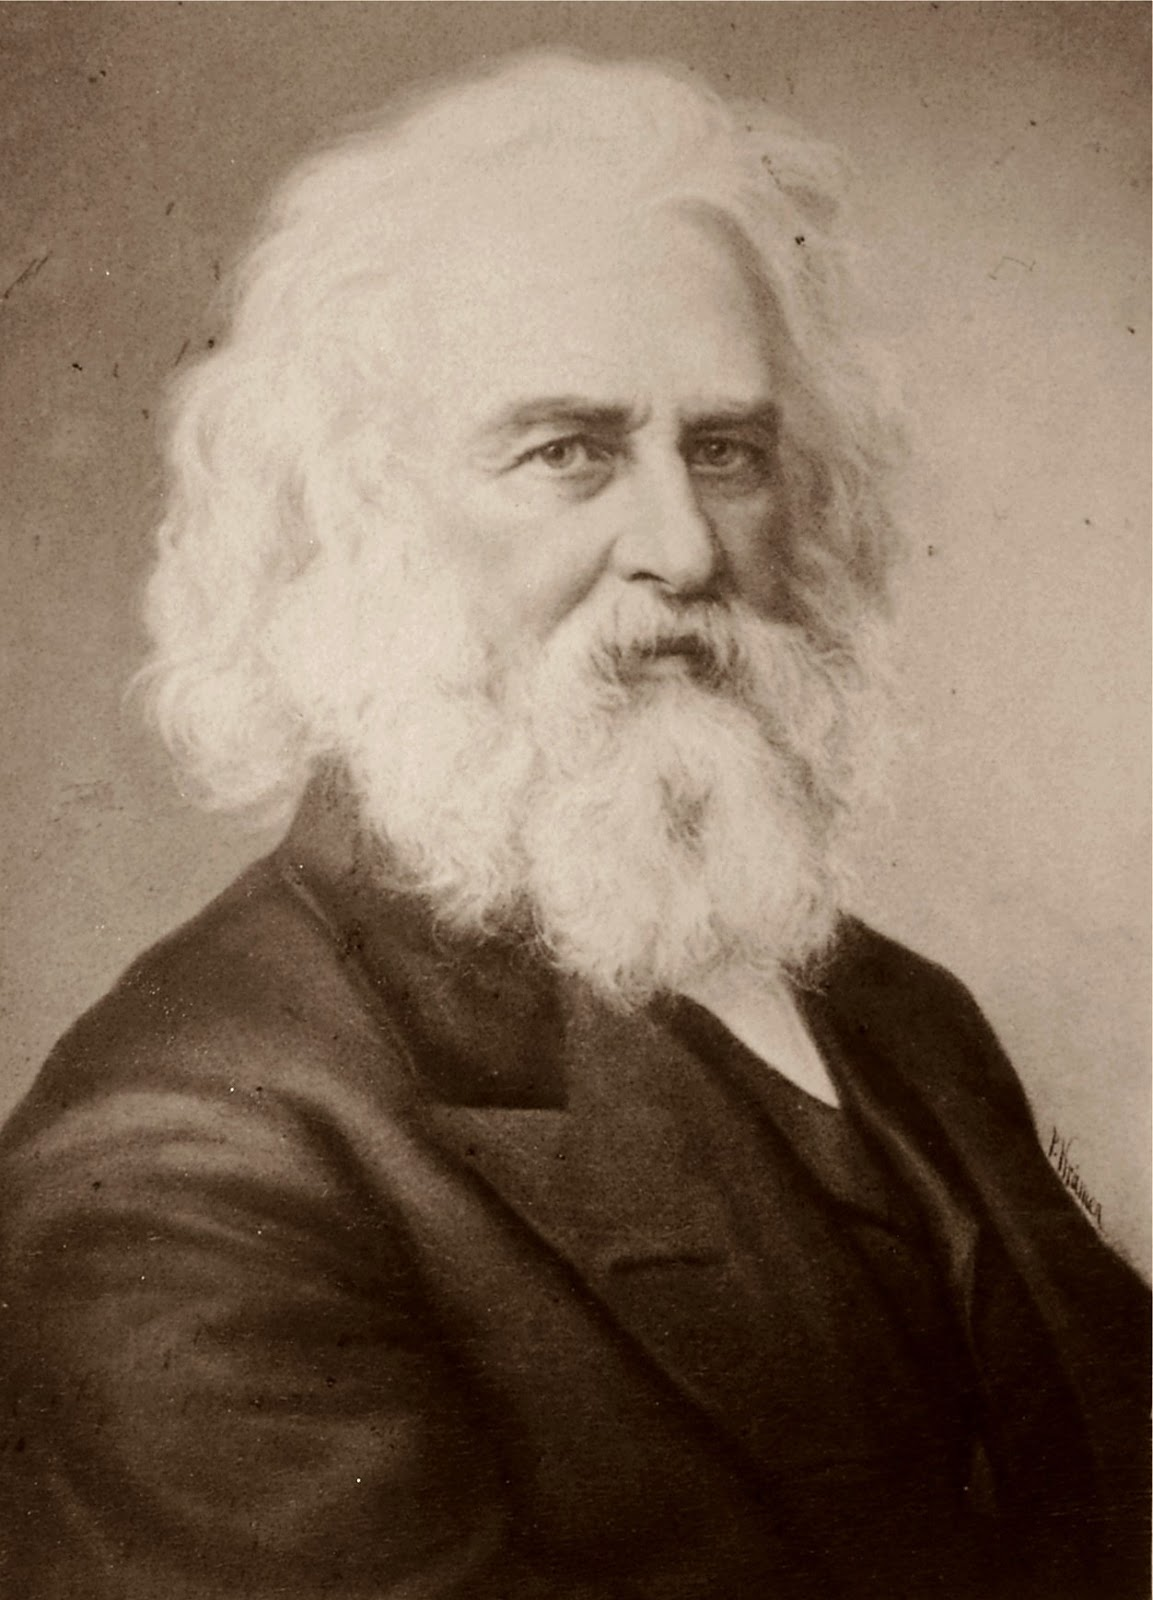 poem analysis subject summarisation and explanation daybreak poem analysis subject summarisation and explanation daybreak by henry wadsworth longfellow